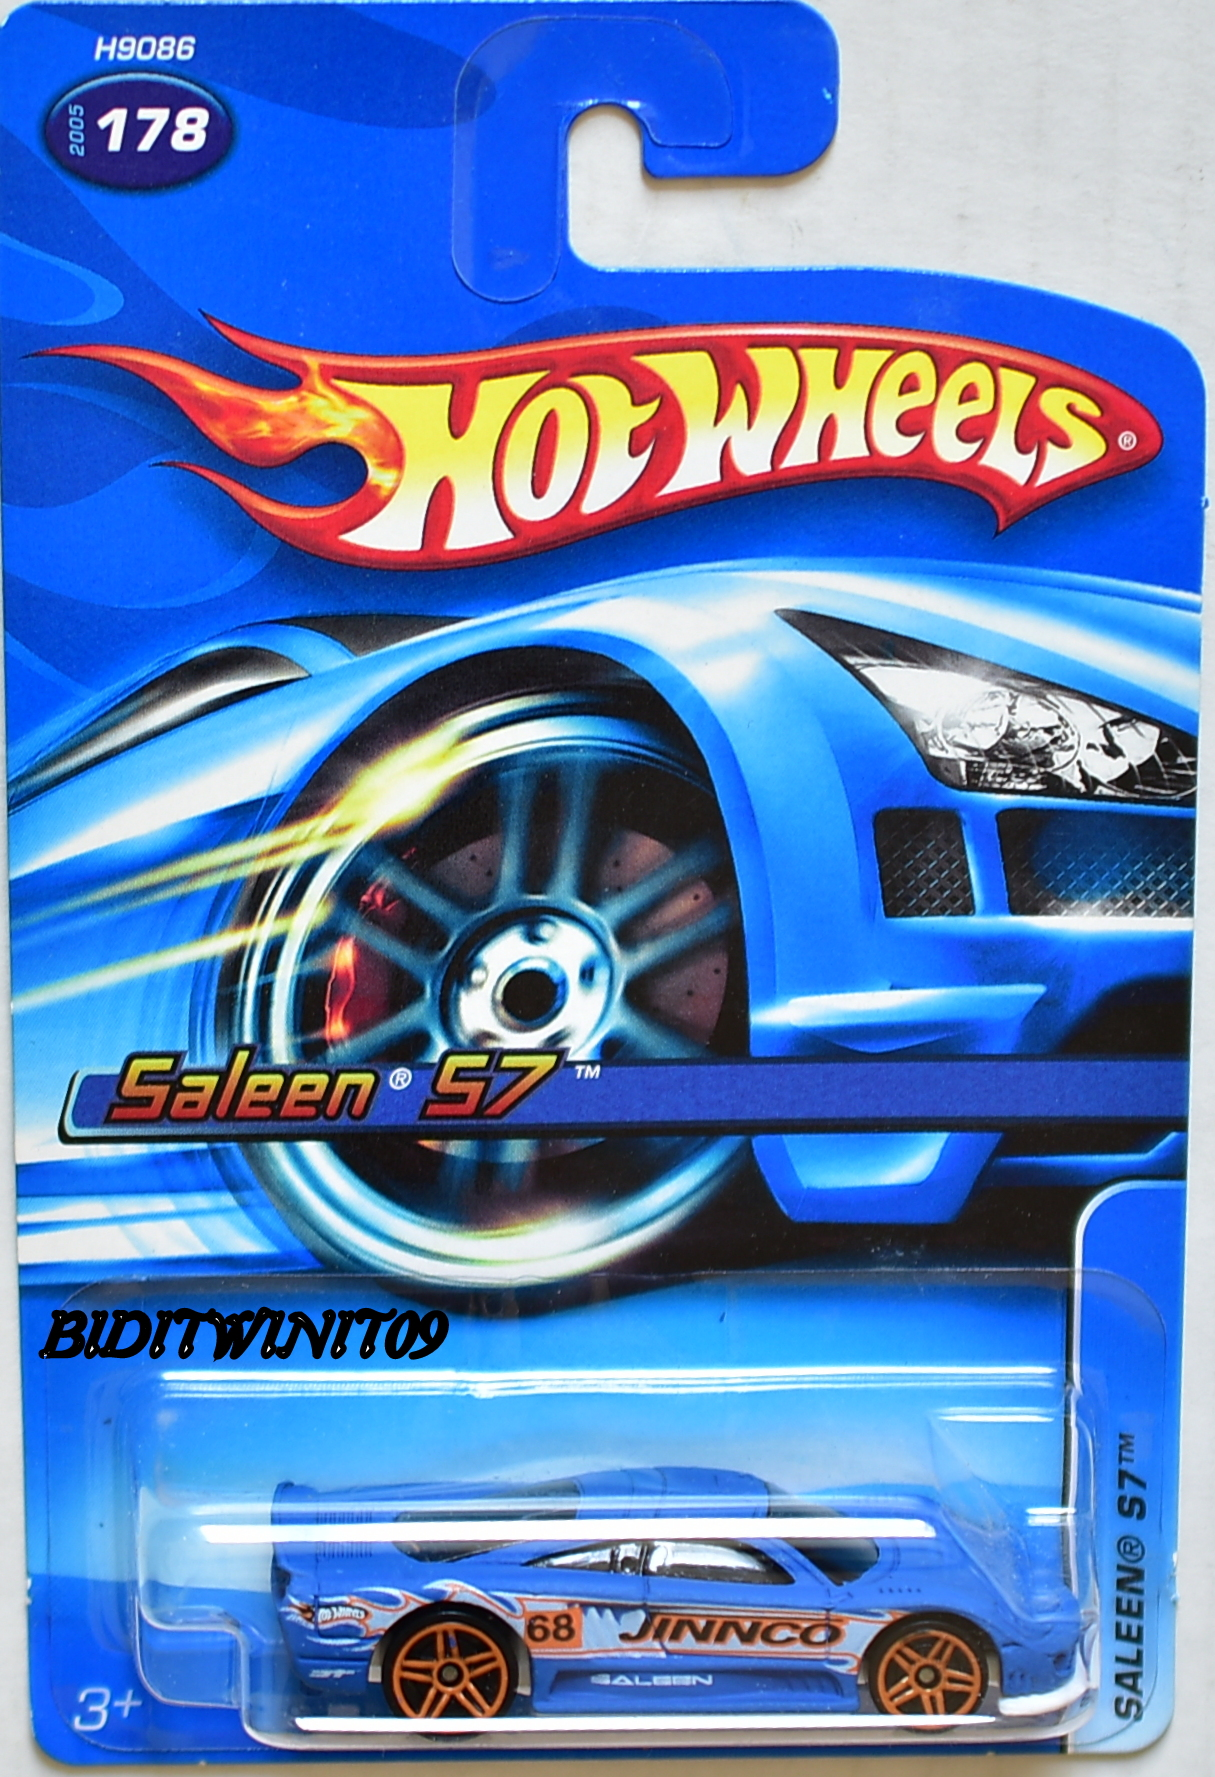 HOT WHEELS 2005 SALEEN S7 #178 JINNCO BLUE E+